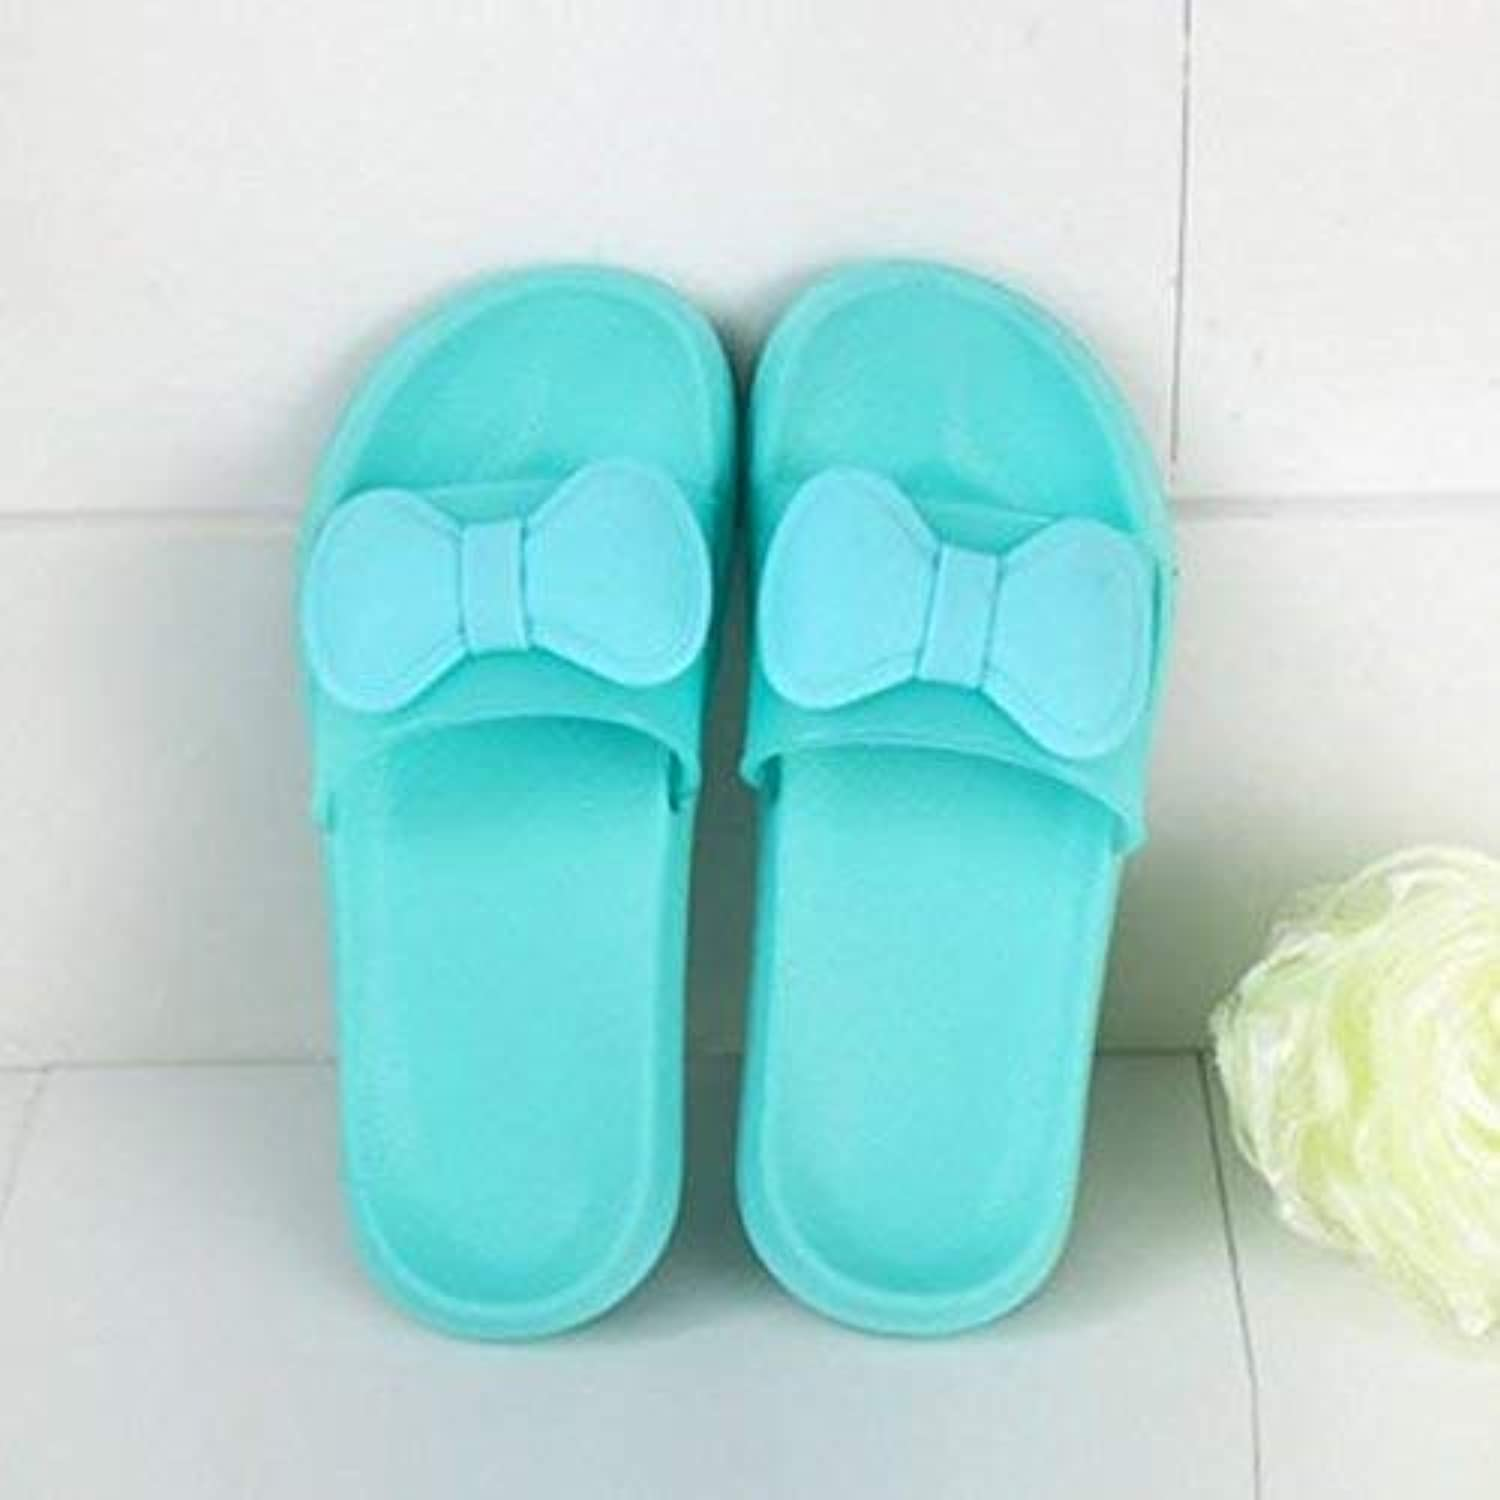 GouuoHi Womens Slippers Home Indoor Slippers Ladies Slip Bath Slippers Pink bluee Green Slipper Soild color Personality Bow Quality